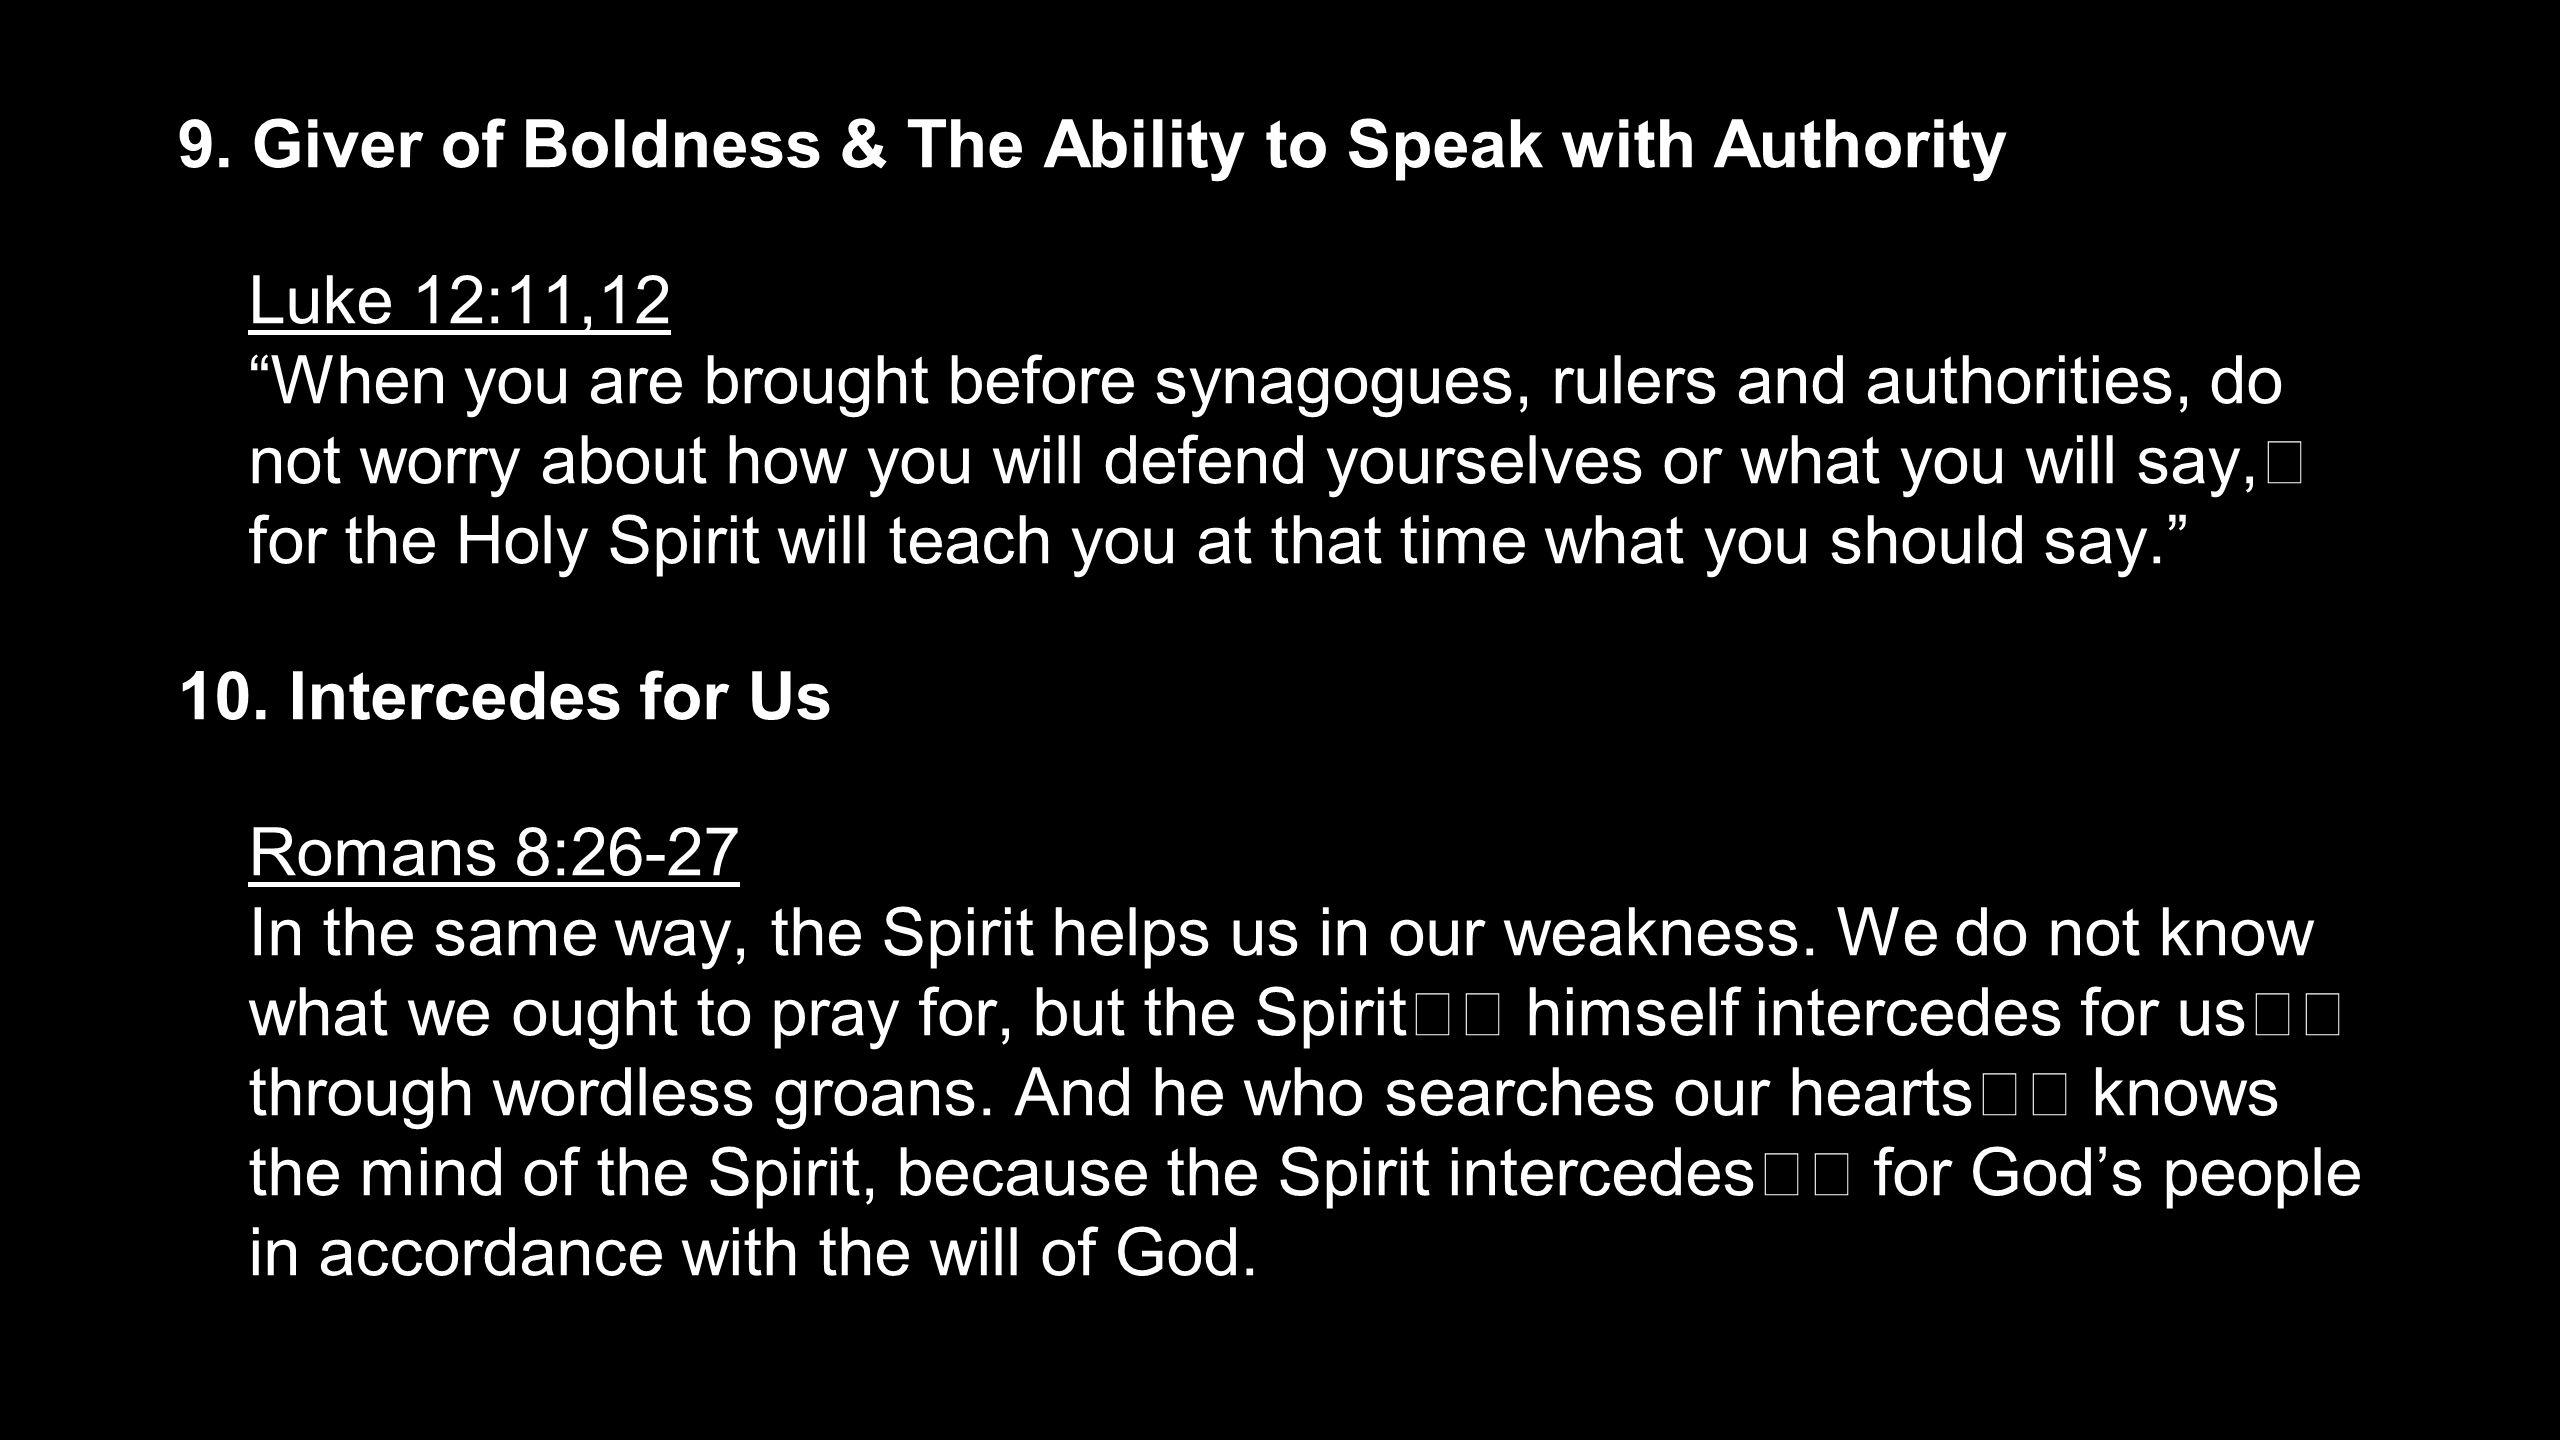 9. Giver of Boldness & The Ability to Speak with Authority